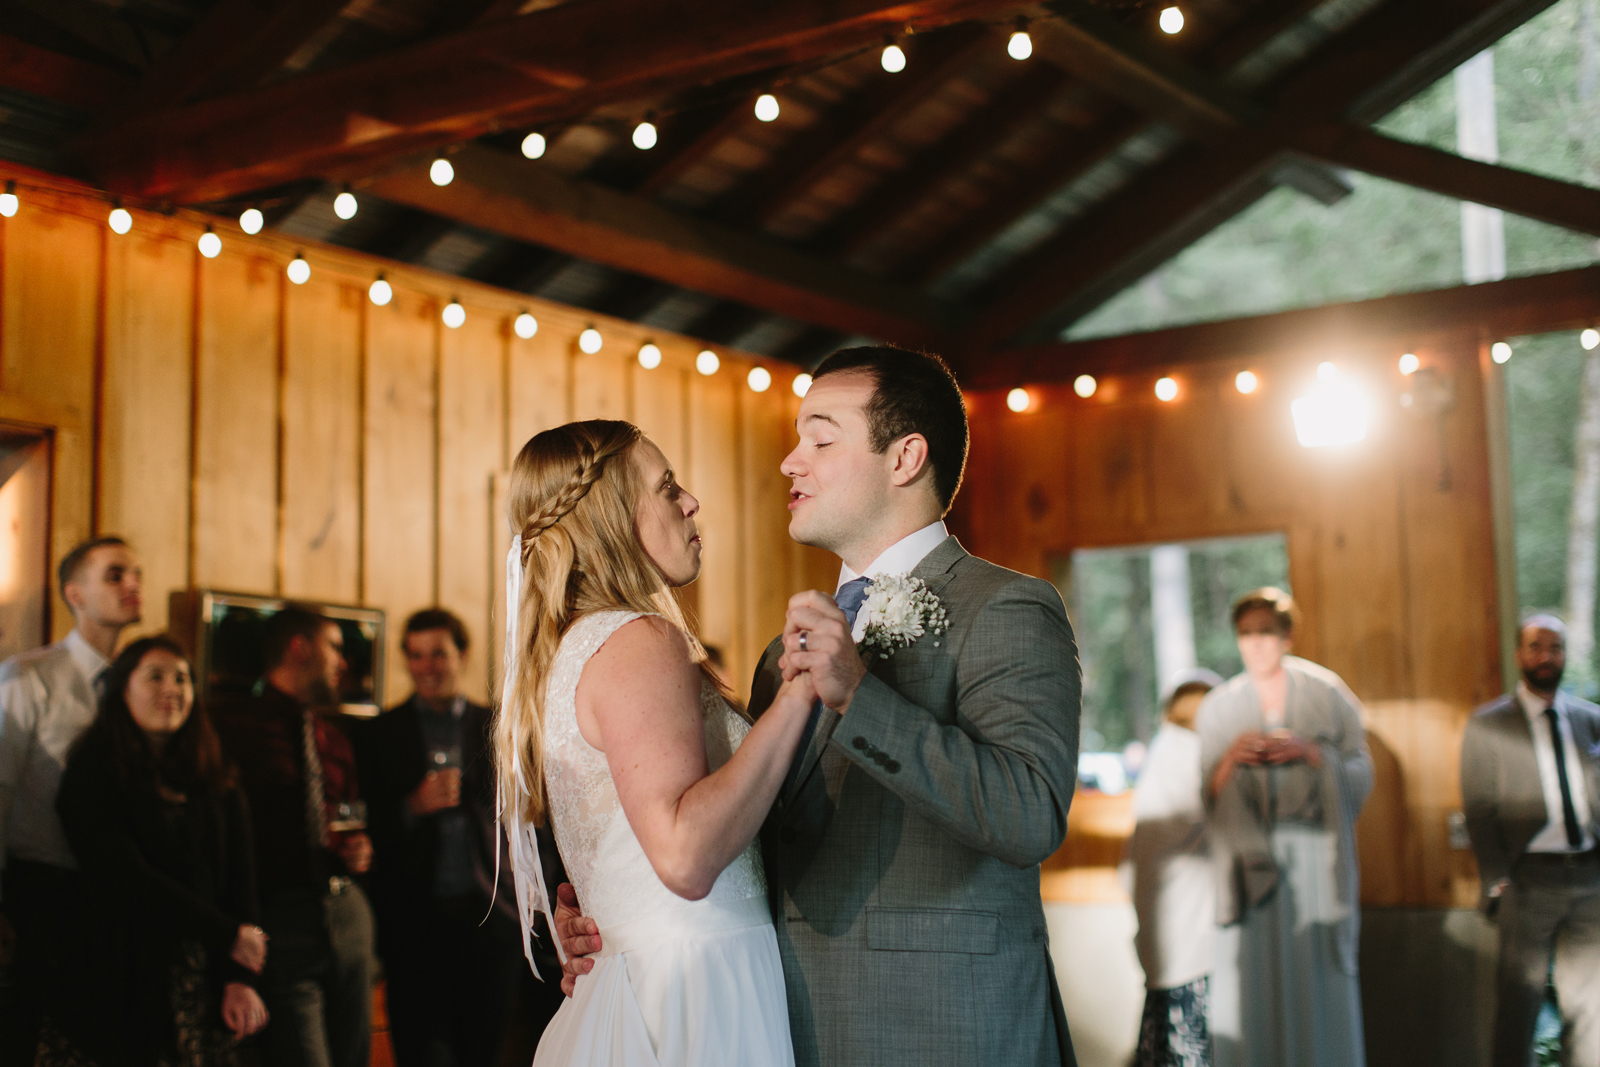 the bride and groom have their first dance at wedding reception at Bridal Veil Lakes in Corbett, Oregon